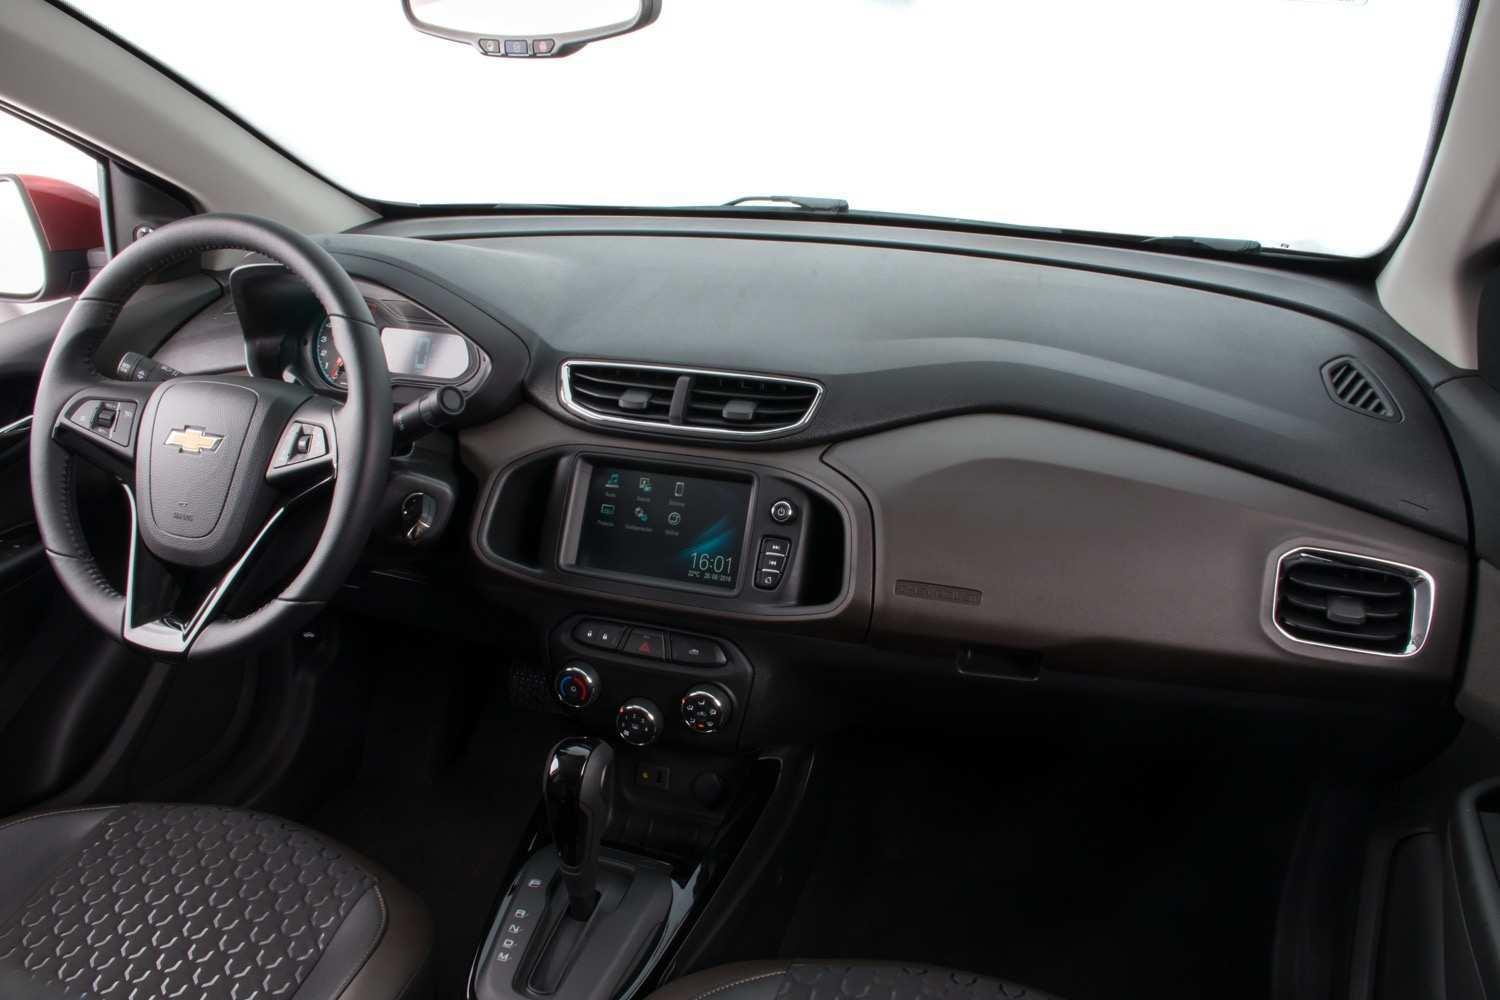 56 The Chevrolet Onix 2019 Interior Performance by Chevrolet Onix 2019 Interior